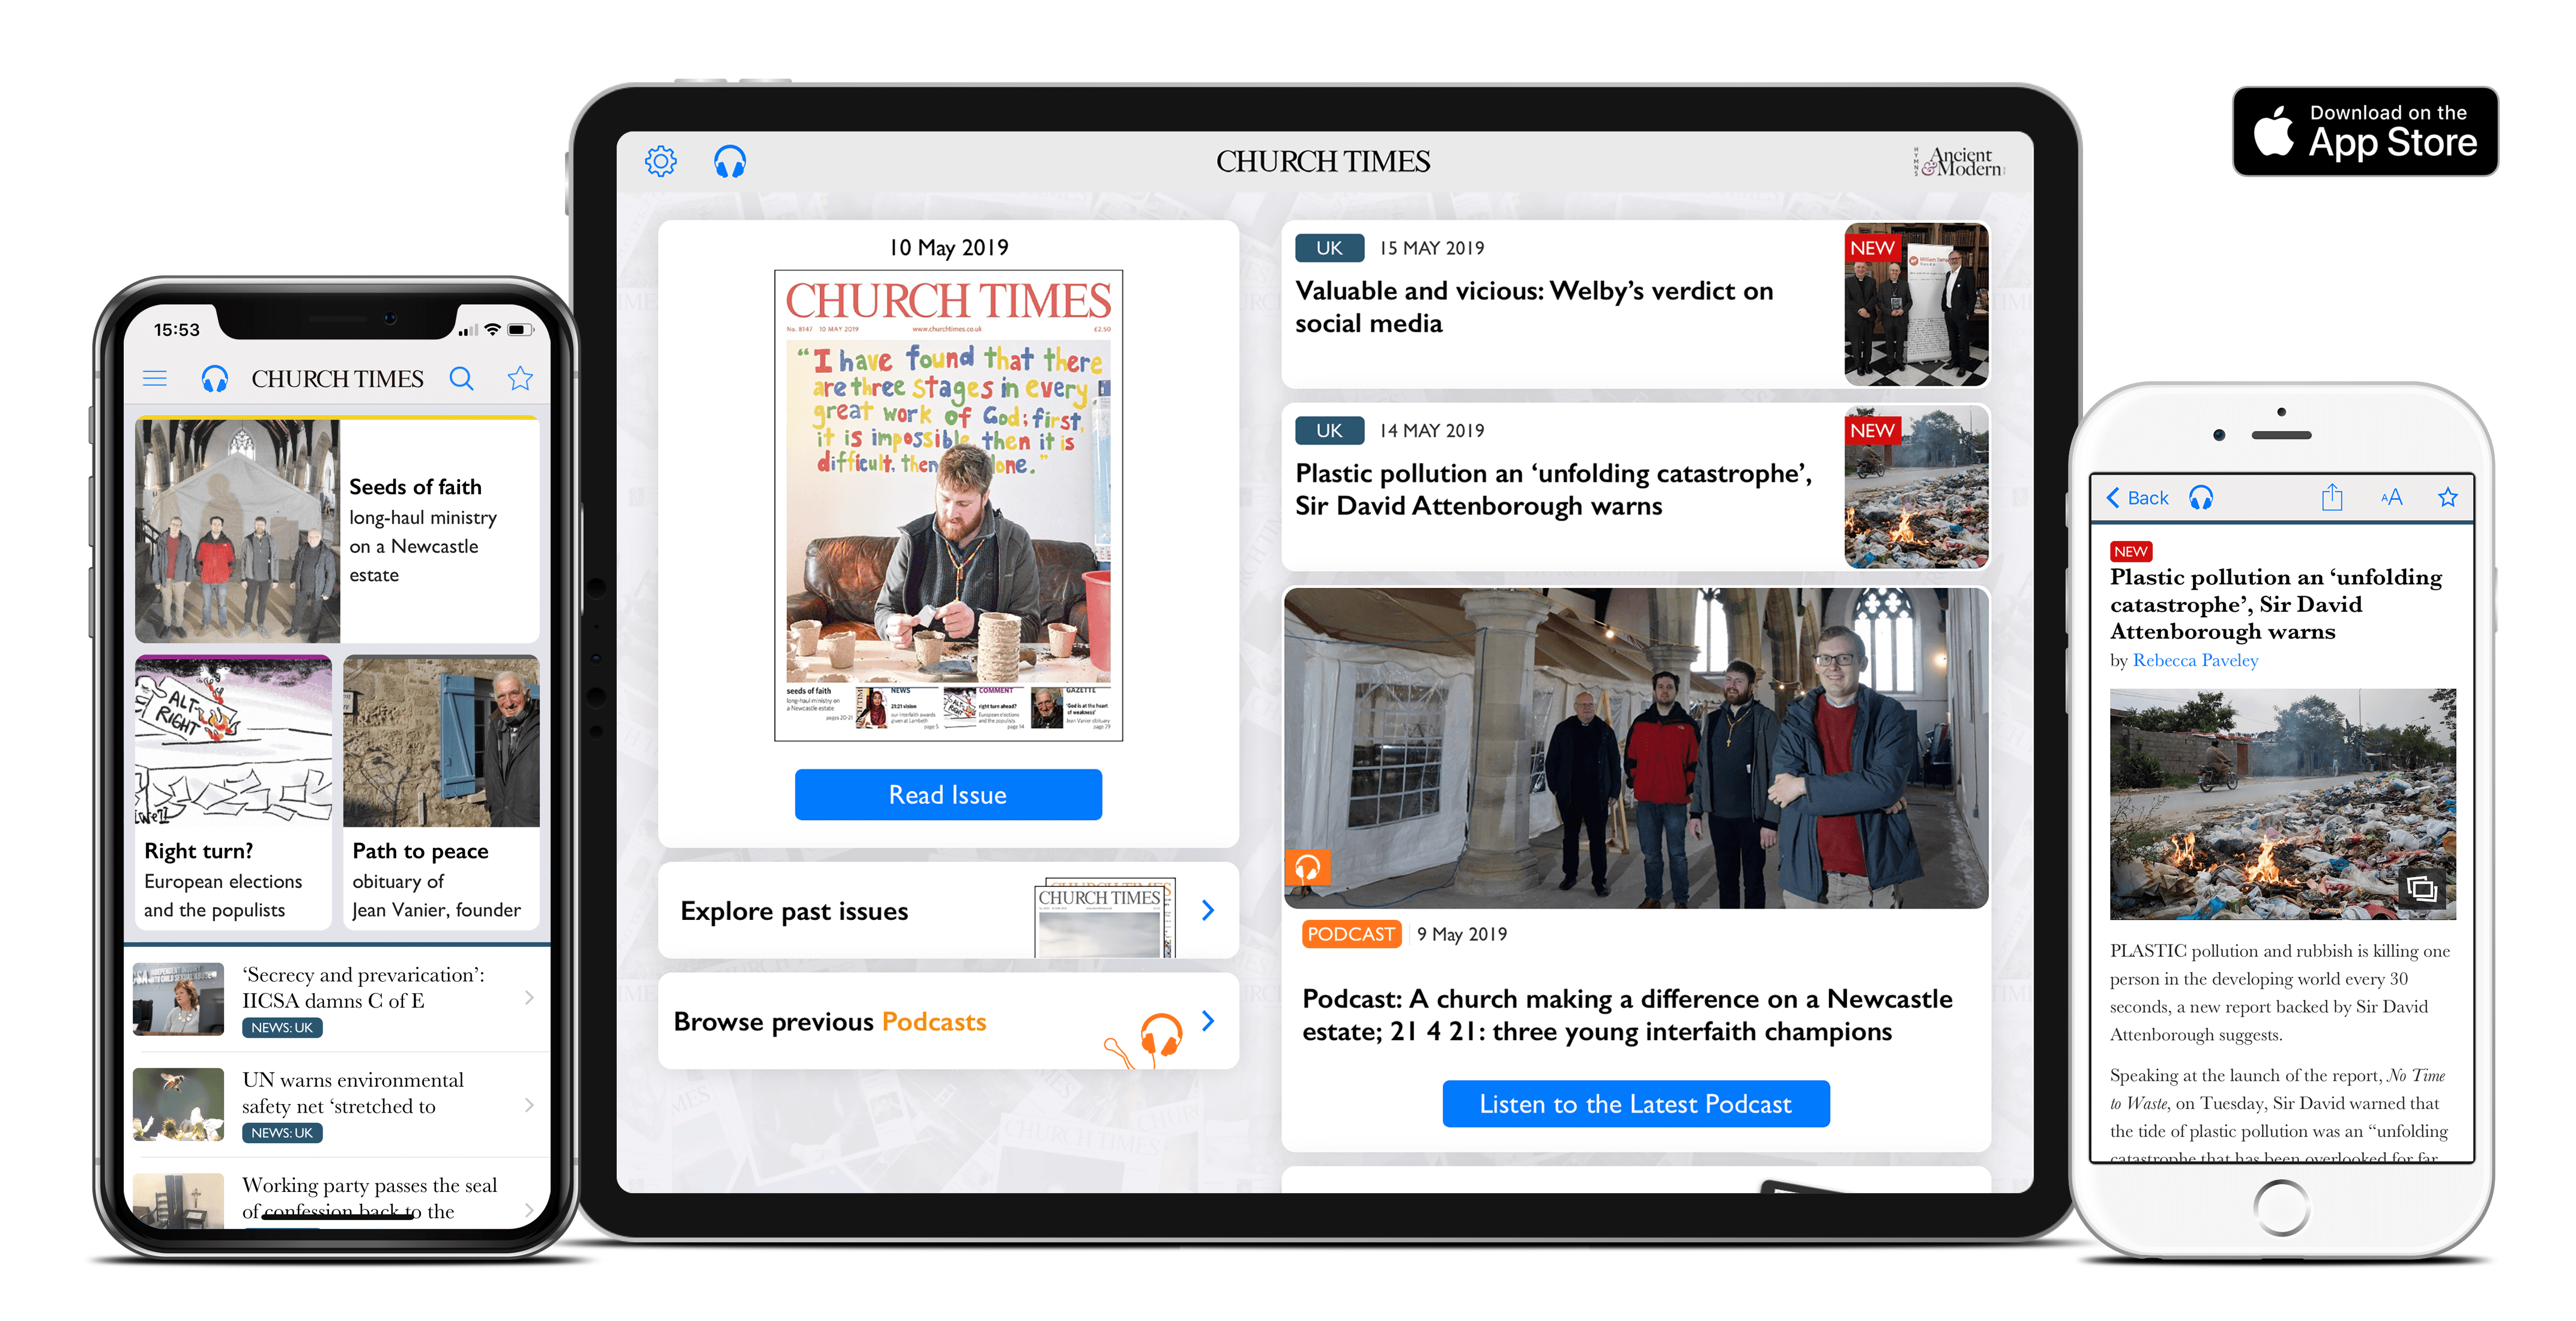 The Church Times App for iPhone and iPad